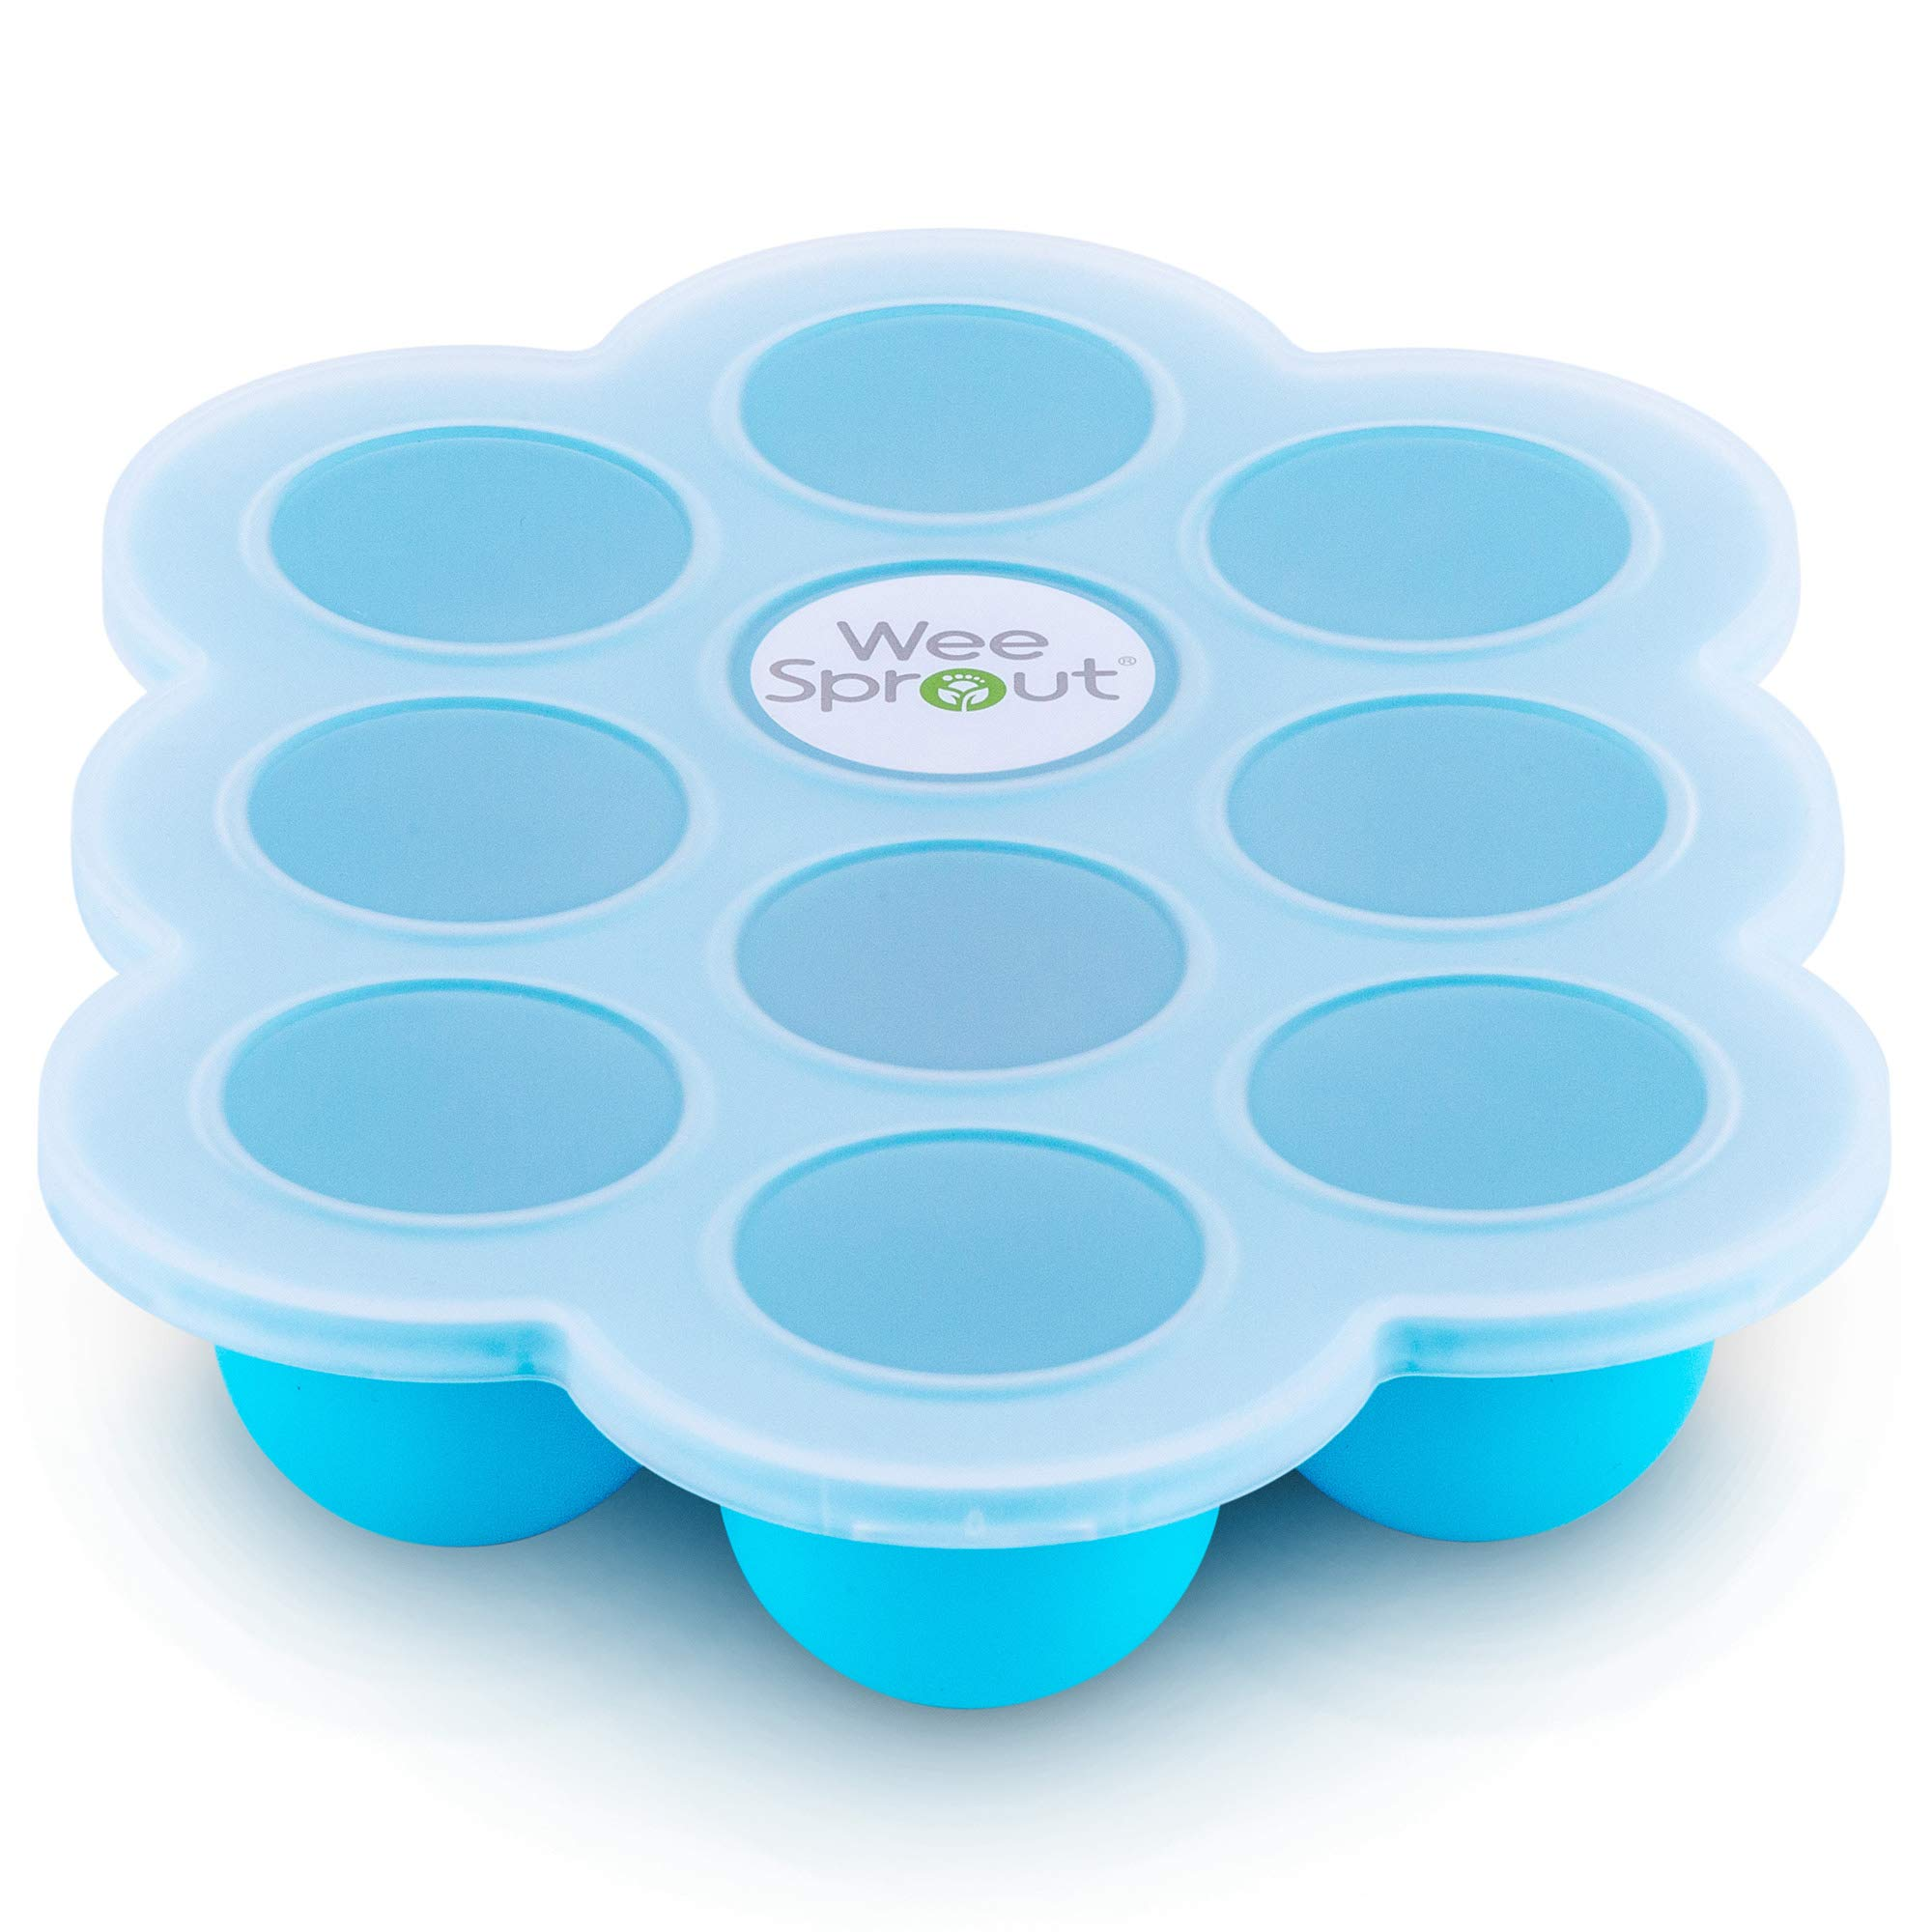 Silicone Baby Food Freezer Tray with Clip-on Lid by WeeSprout - Perfect Storage Container for Homemade Baby Food, Vegetable & Fruit Purees and Breast Milk - BPA Free & FDA Approved by WeeSprout